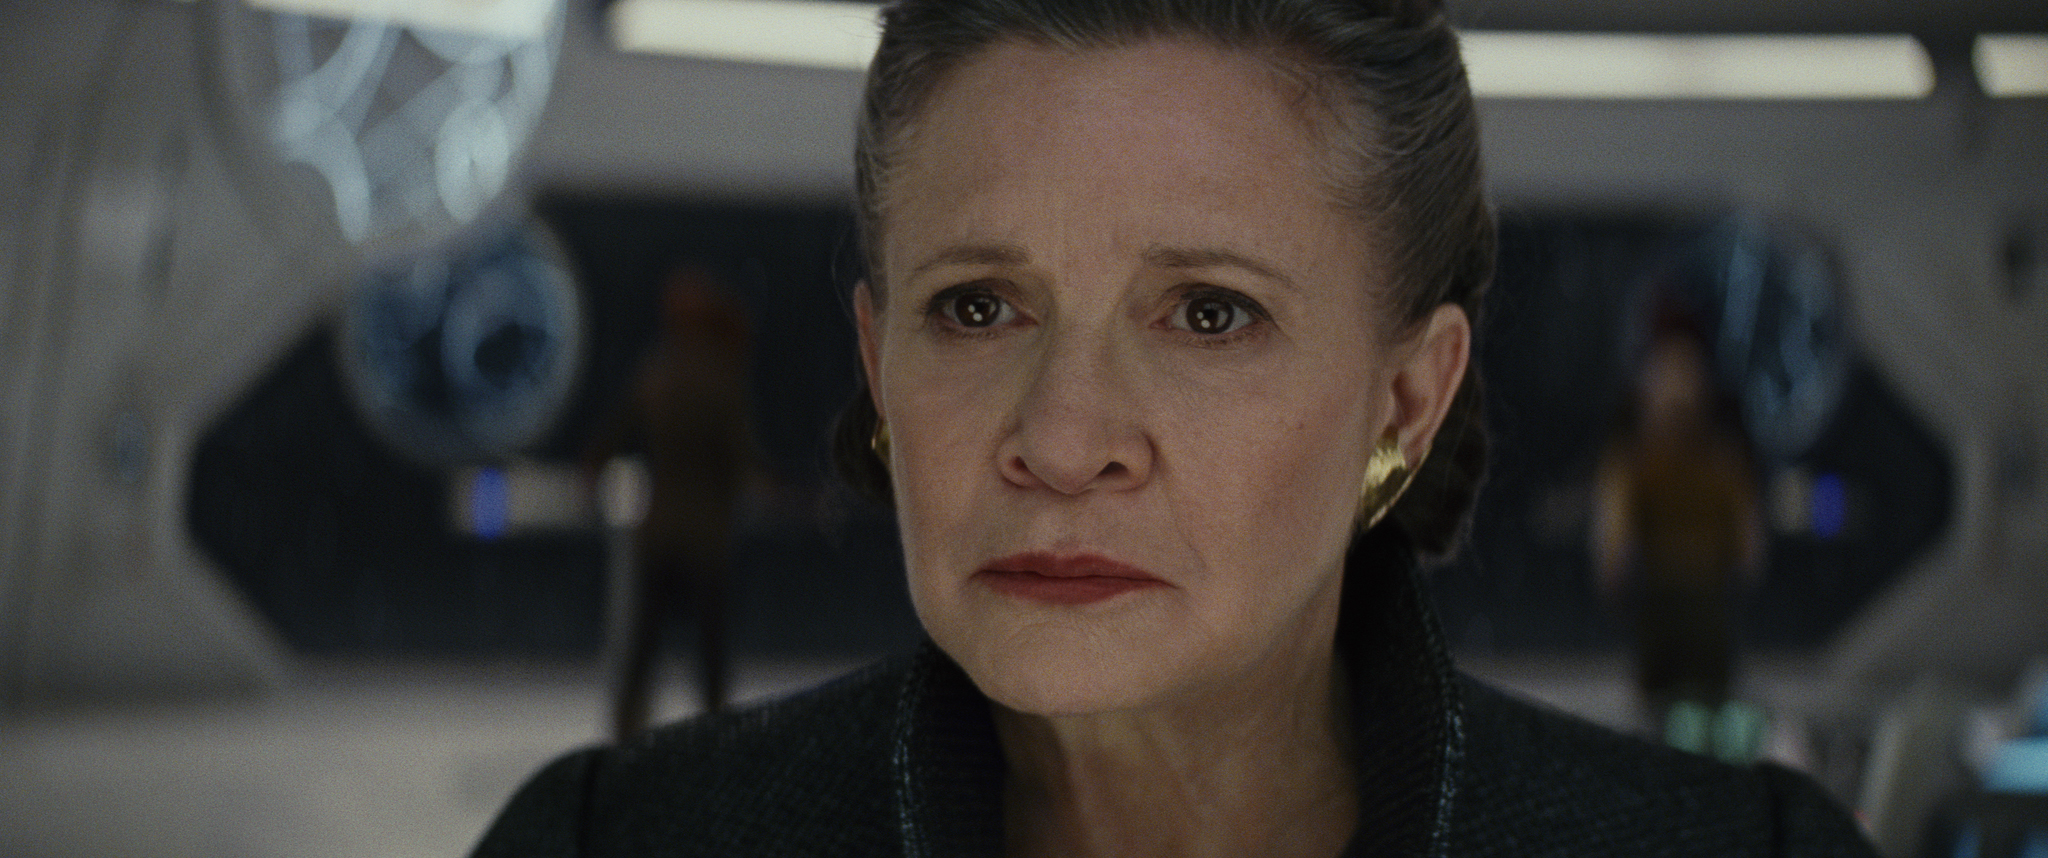 Fisher as Leia: Does she or doesn't she?